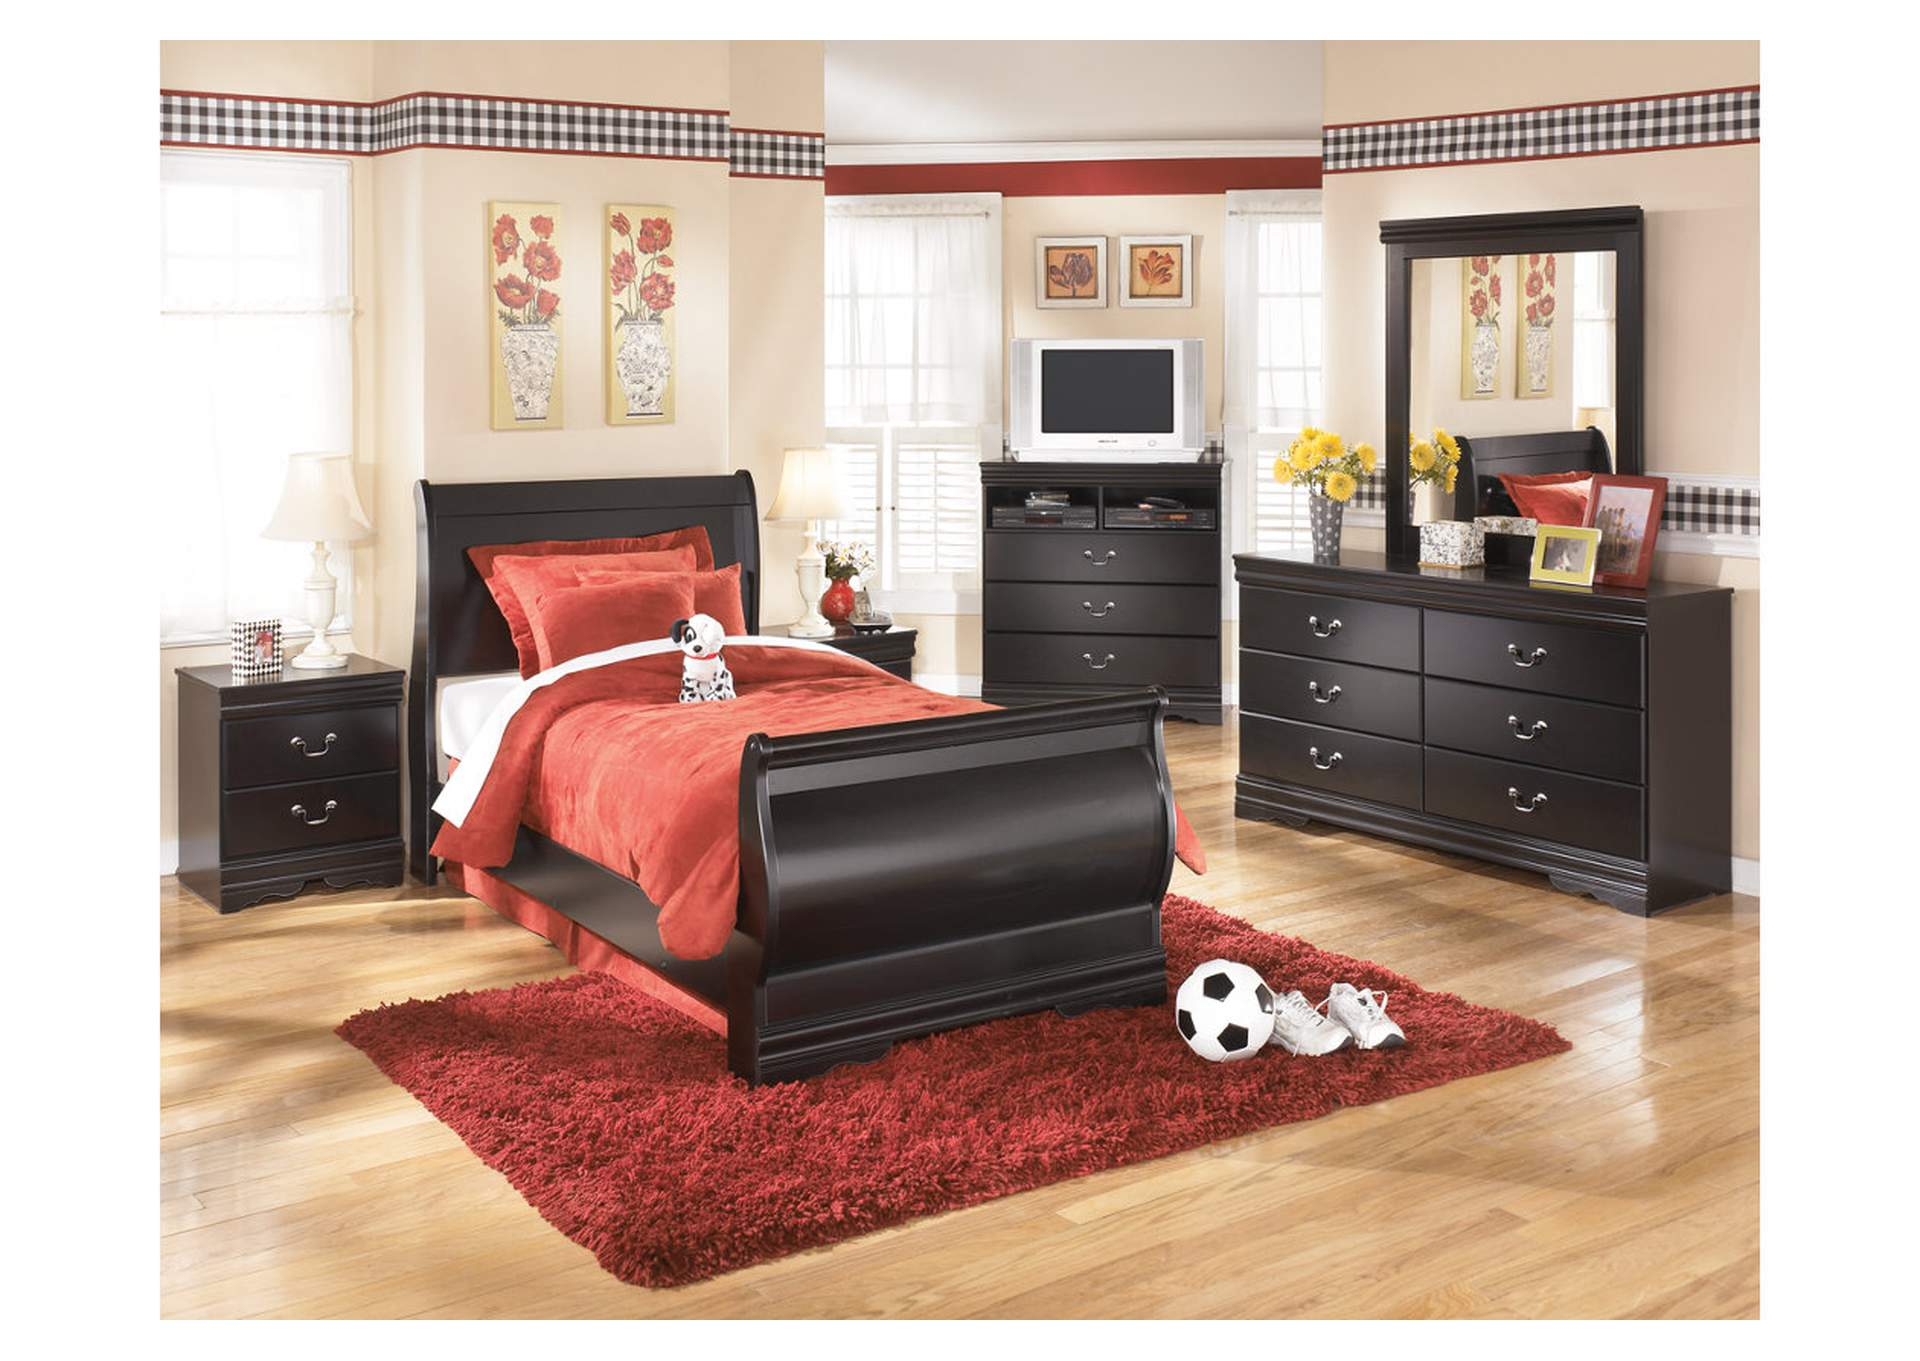 Huey Vineyard Full Sleigh Bed,ABF Signature Design by Ashley